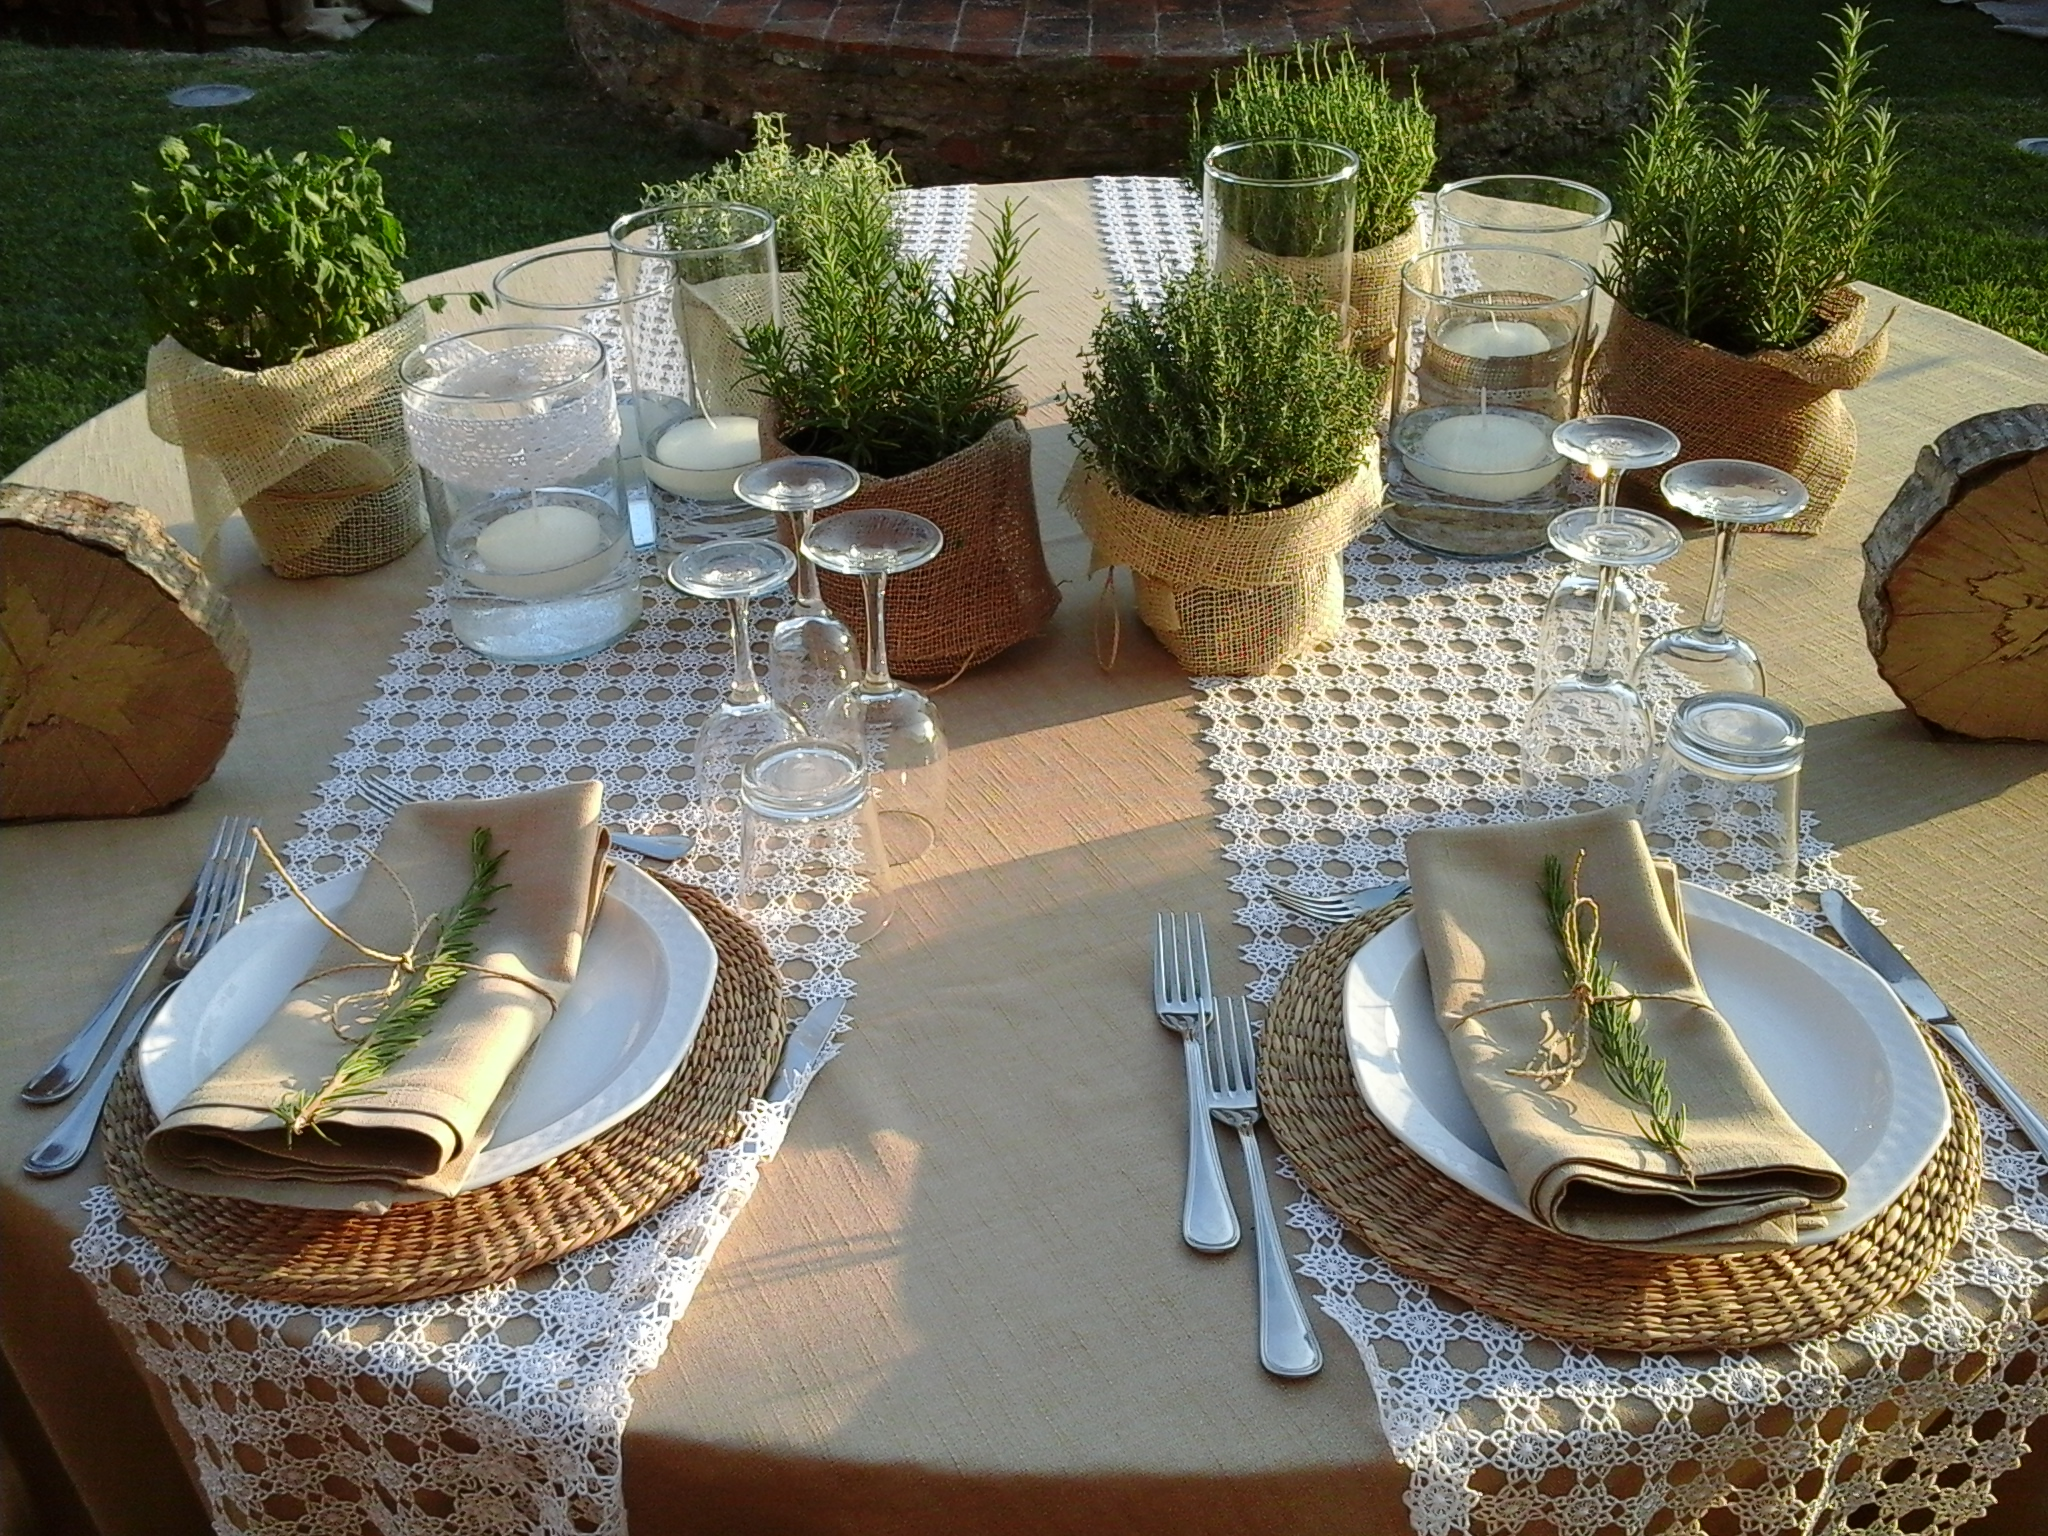 Matrimonio Country Chic Toscana : Matrimonio country in toscana petali di rosa wedding planner